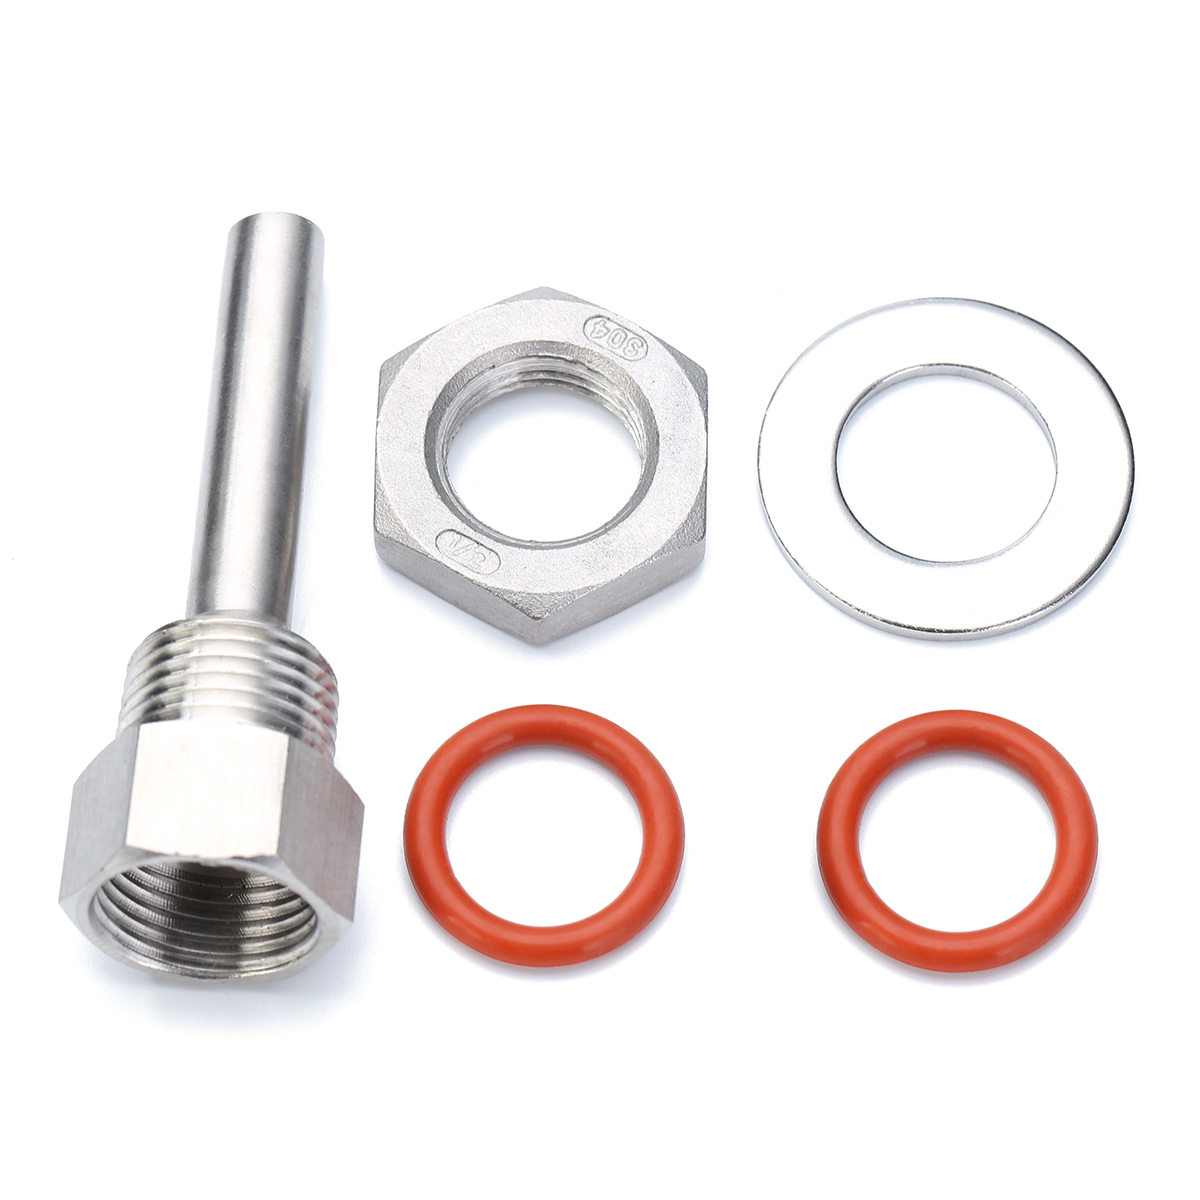 "Mayitr 2.5""/4"" Stainless Steel Thermowells Kit with 1/2"" NPT Lock Nut Weldless Fittings Washer For Home Brew DIY Tools"